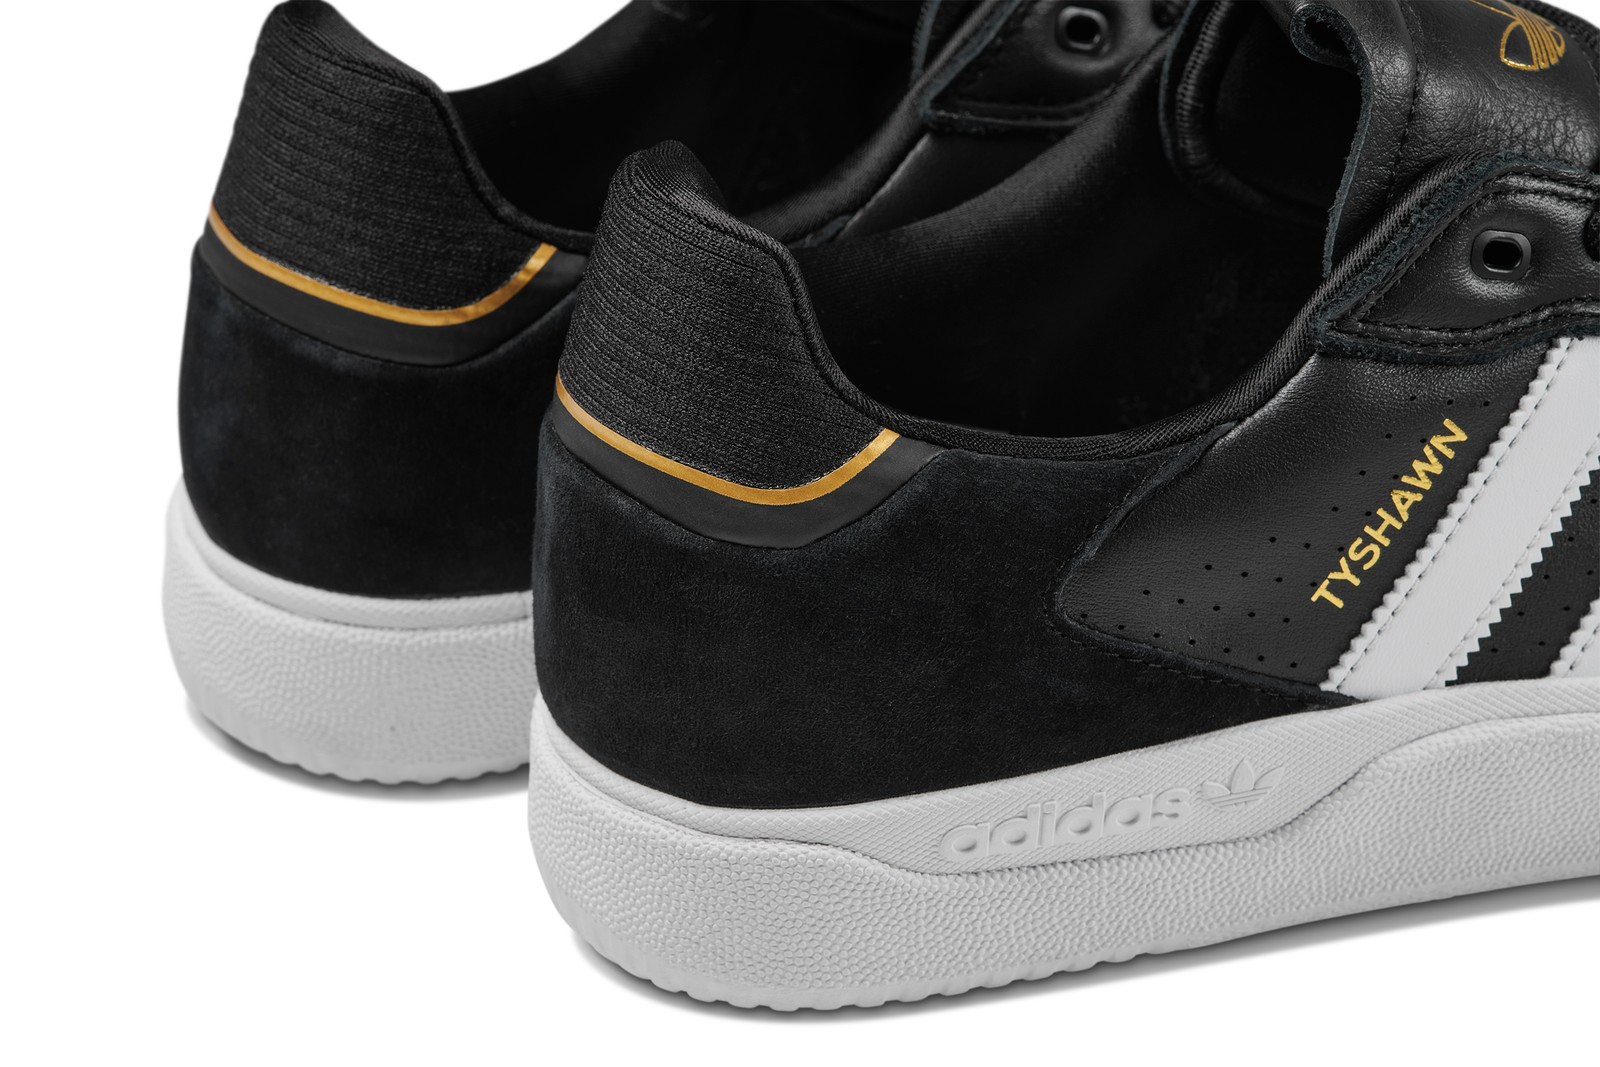 Adidas' Tyshawn Low Black/White Colorway Available Now